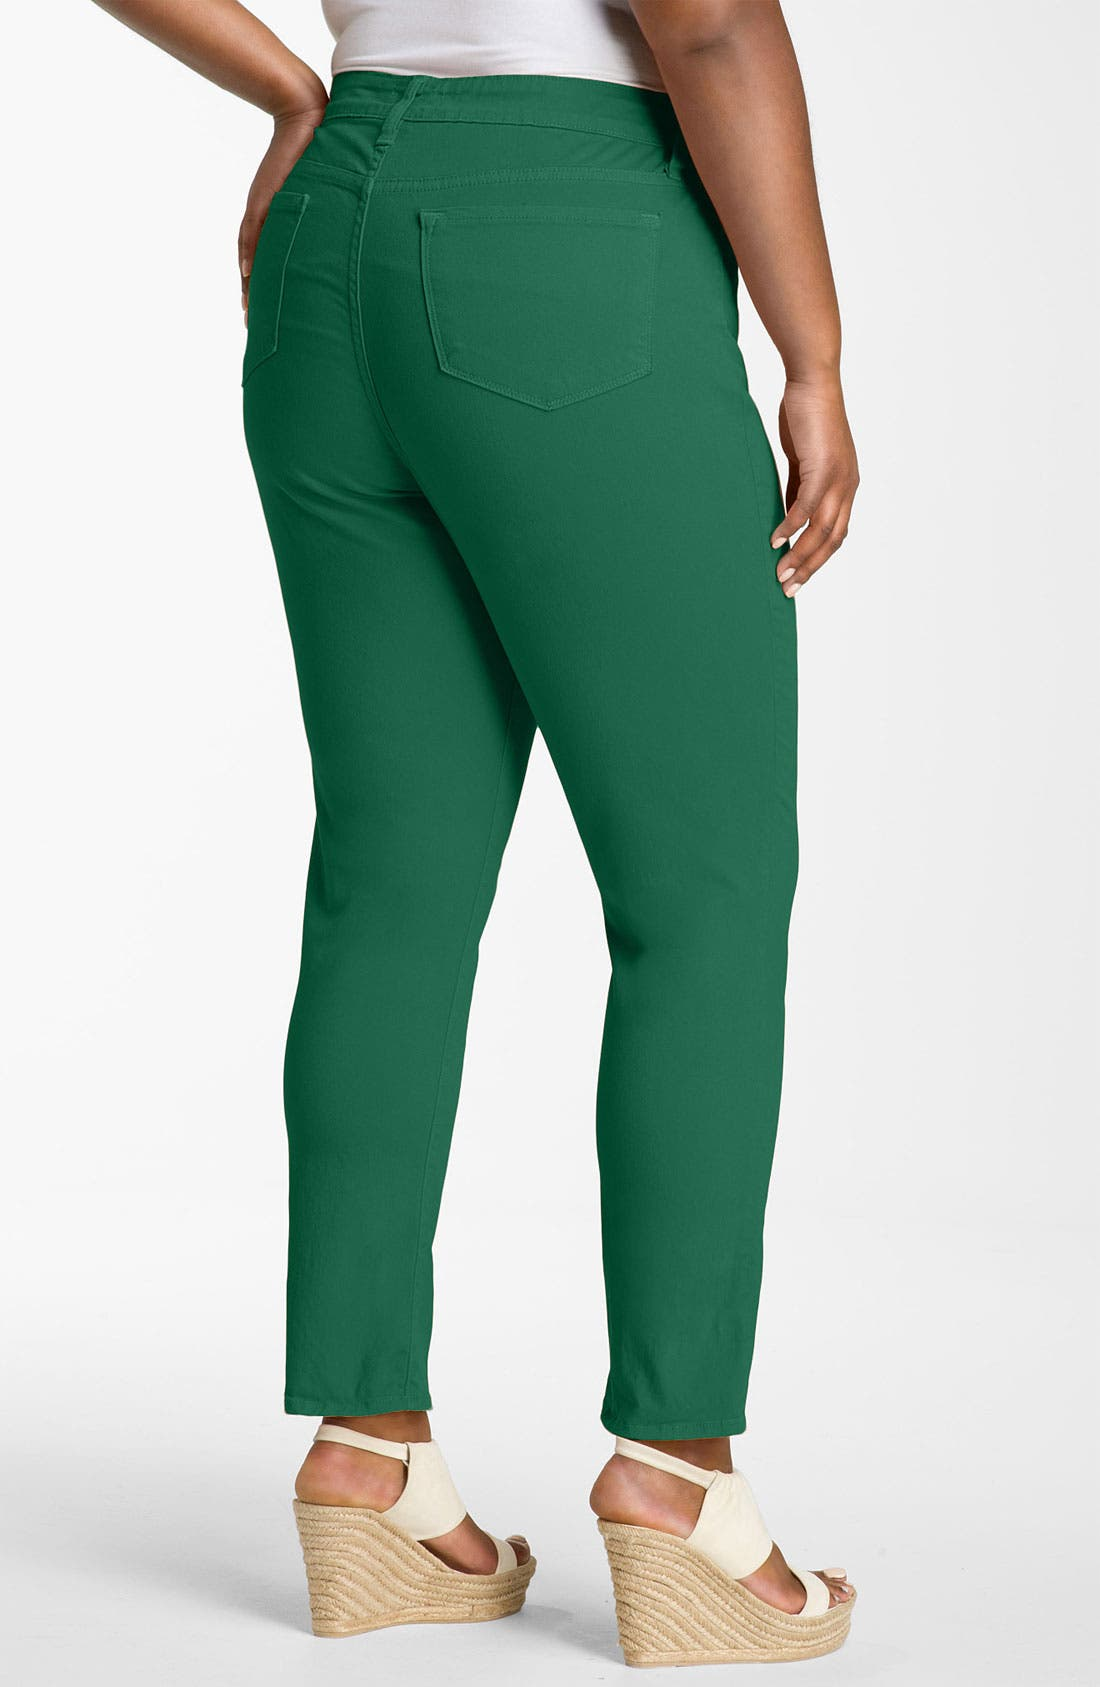 Colored Twill Skinny Jeans,                             Main thumbnail 1, color,                             Kelly